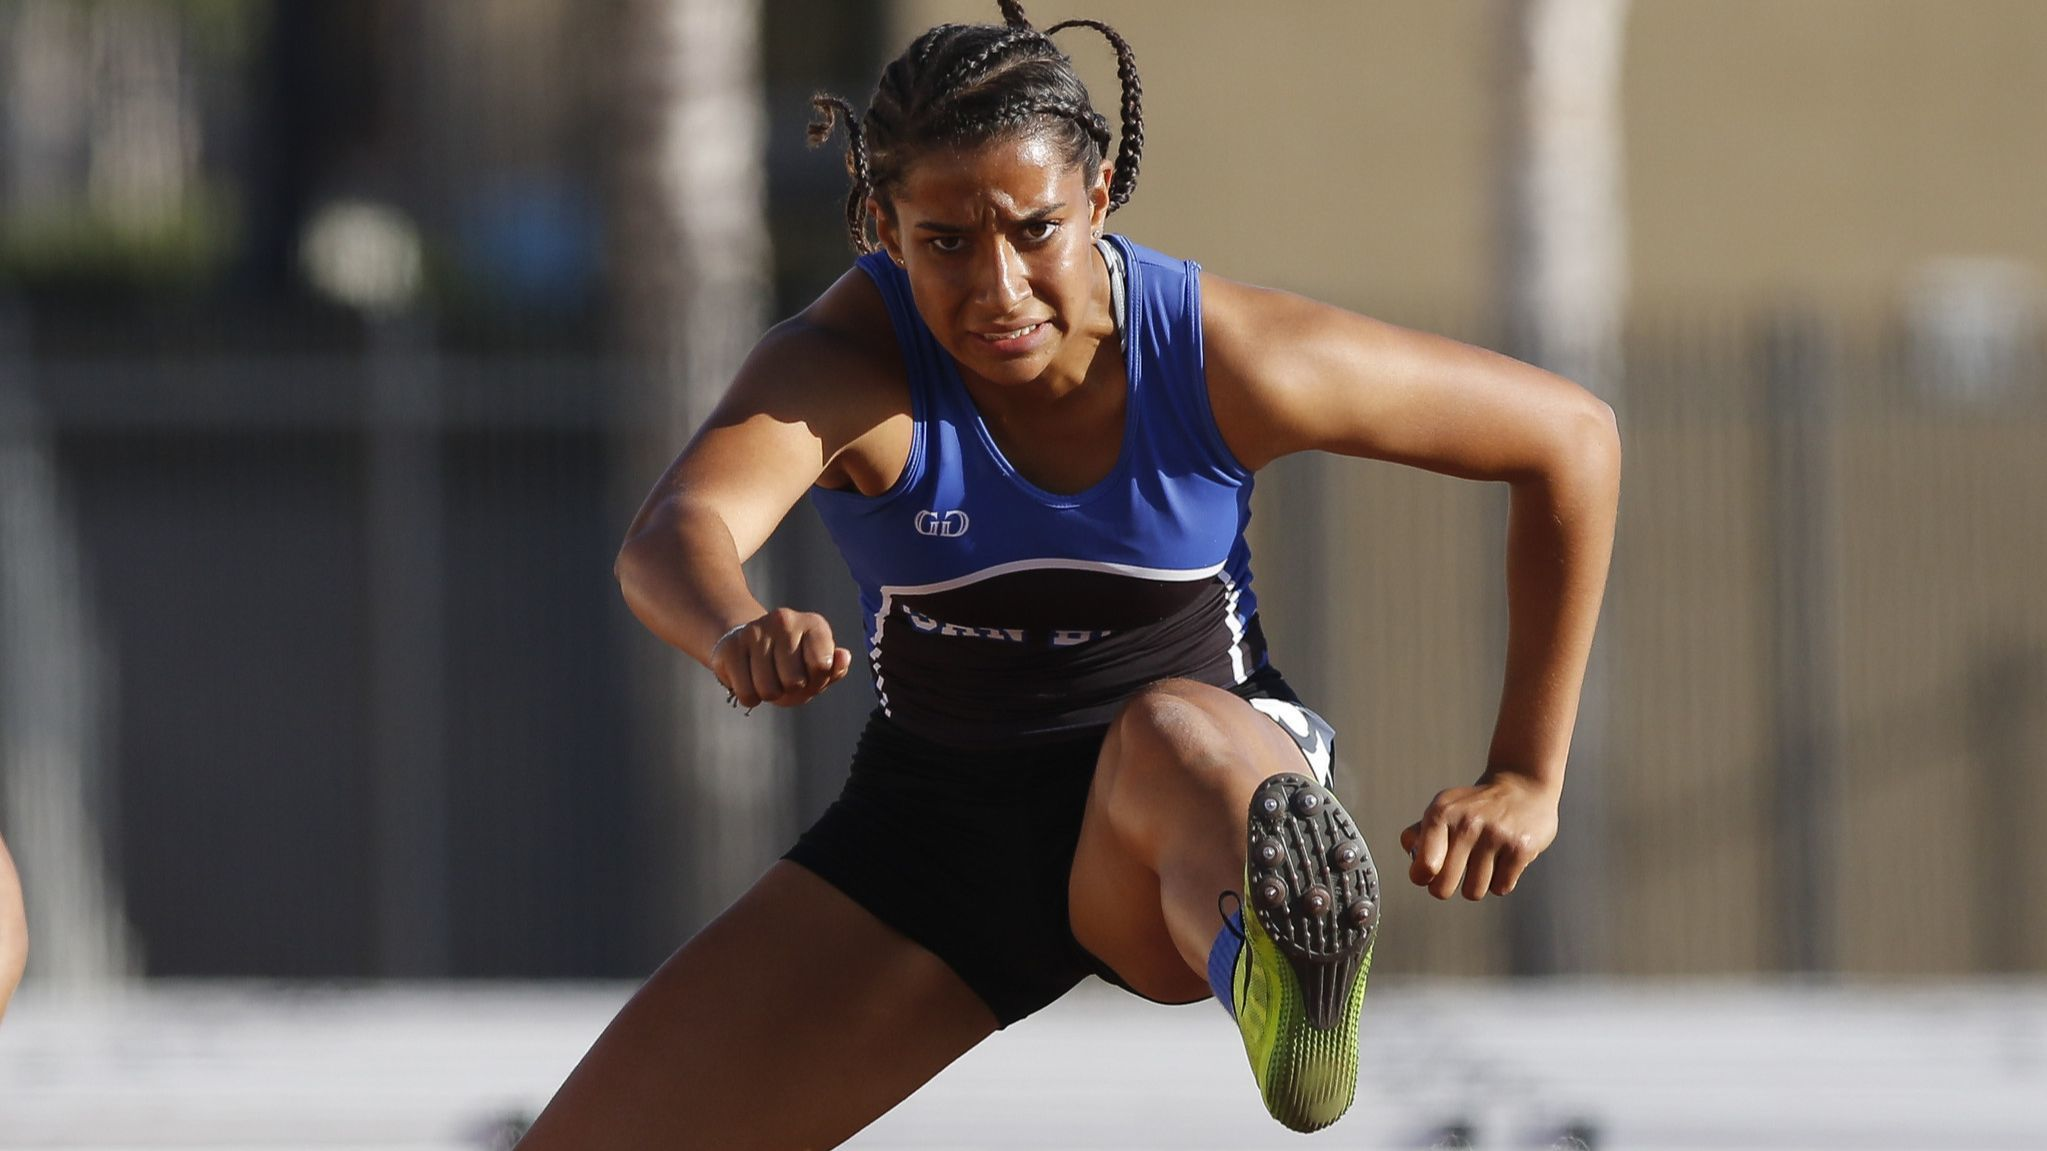 San Diego's Sonia Redon clears the last hurdle on her win in the girls 100 meter hurdles at the Esco